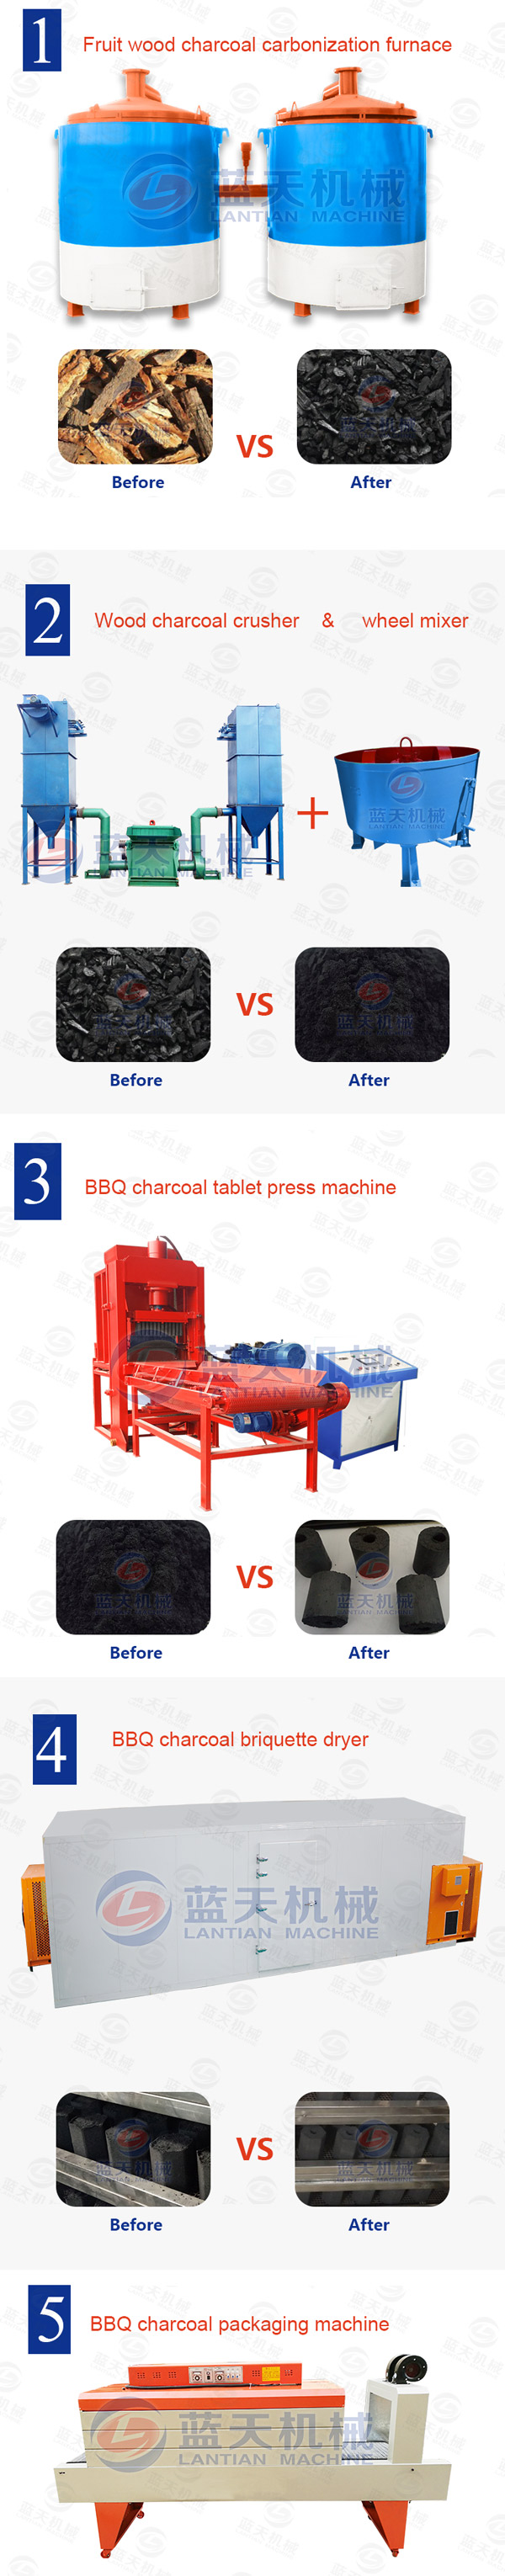 BBQ Charcoal Tablet Press Machine Production Line